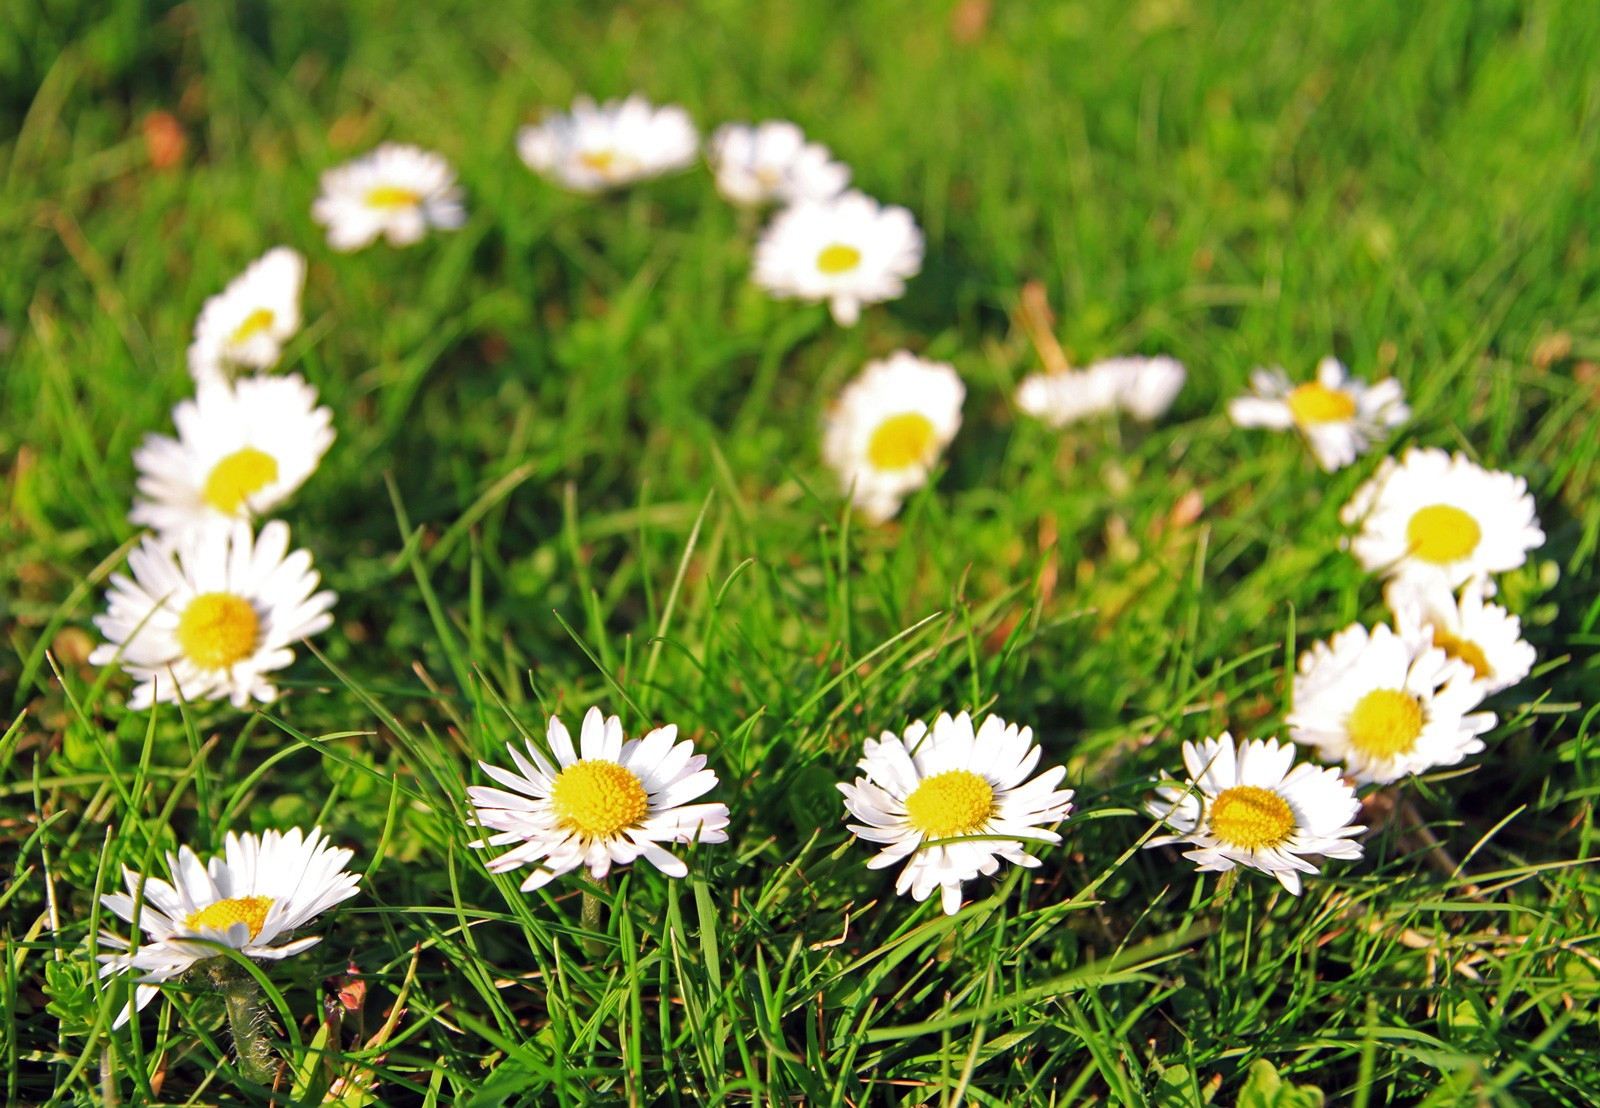 Symbolic meaning of the daisy on whats your sign i hope these tidbits about the symbolic meaning of daisy offers you a new perspective on this delightful little flower who knew it could be such a powerful izmirmasajfo Image collections